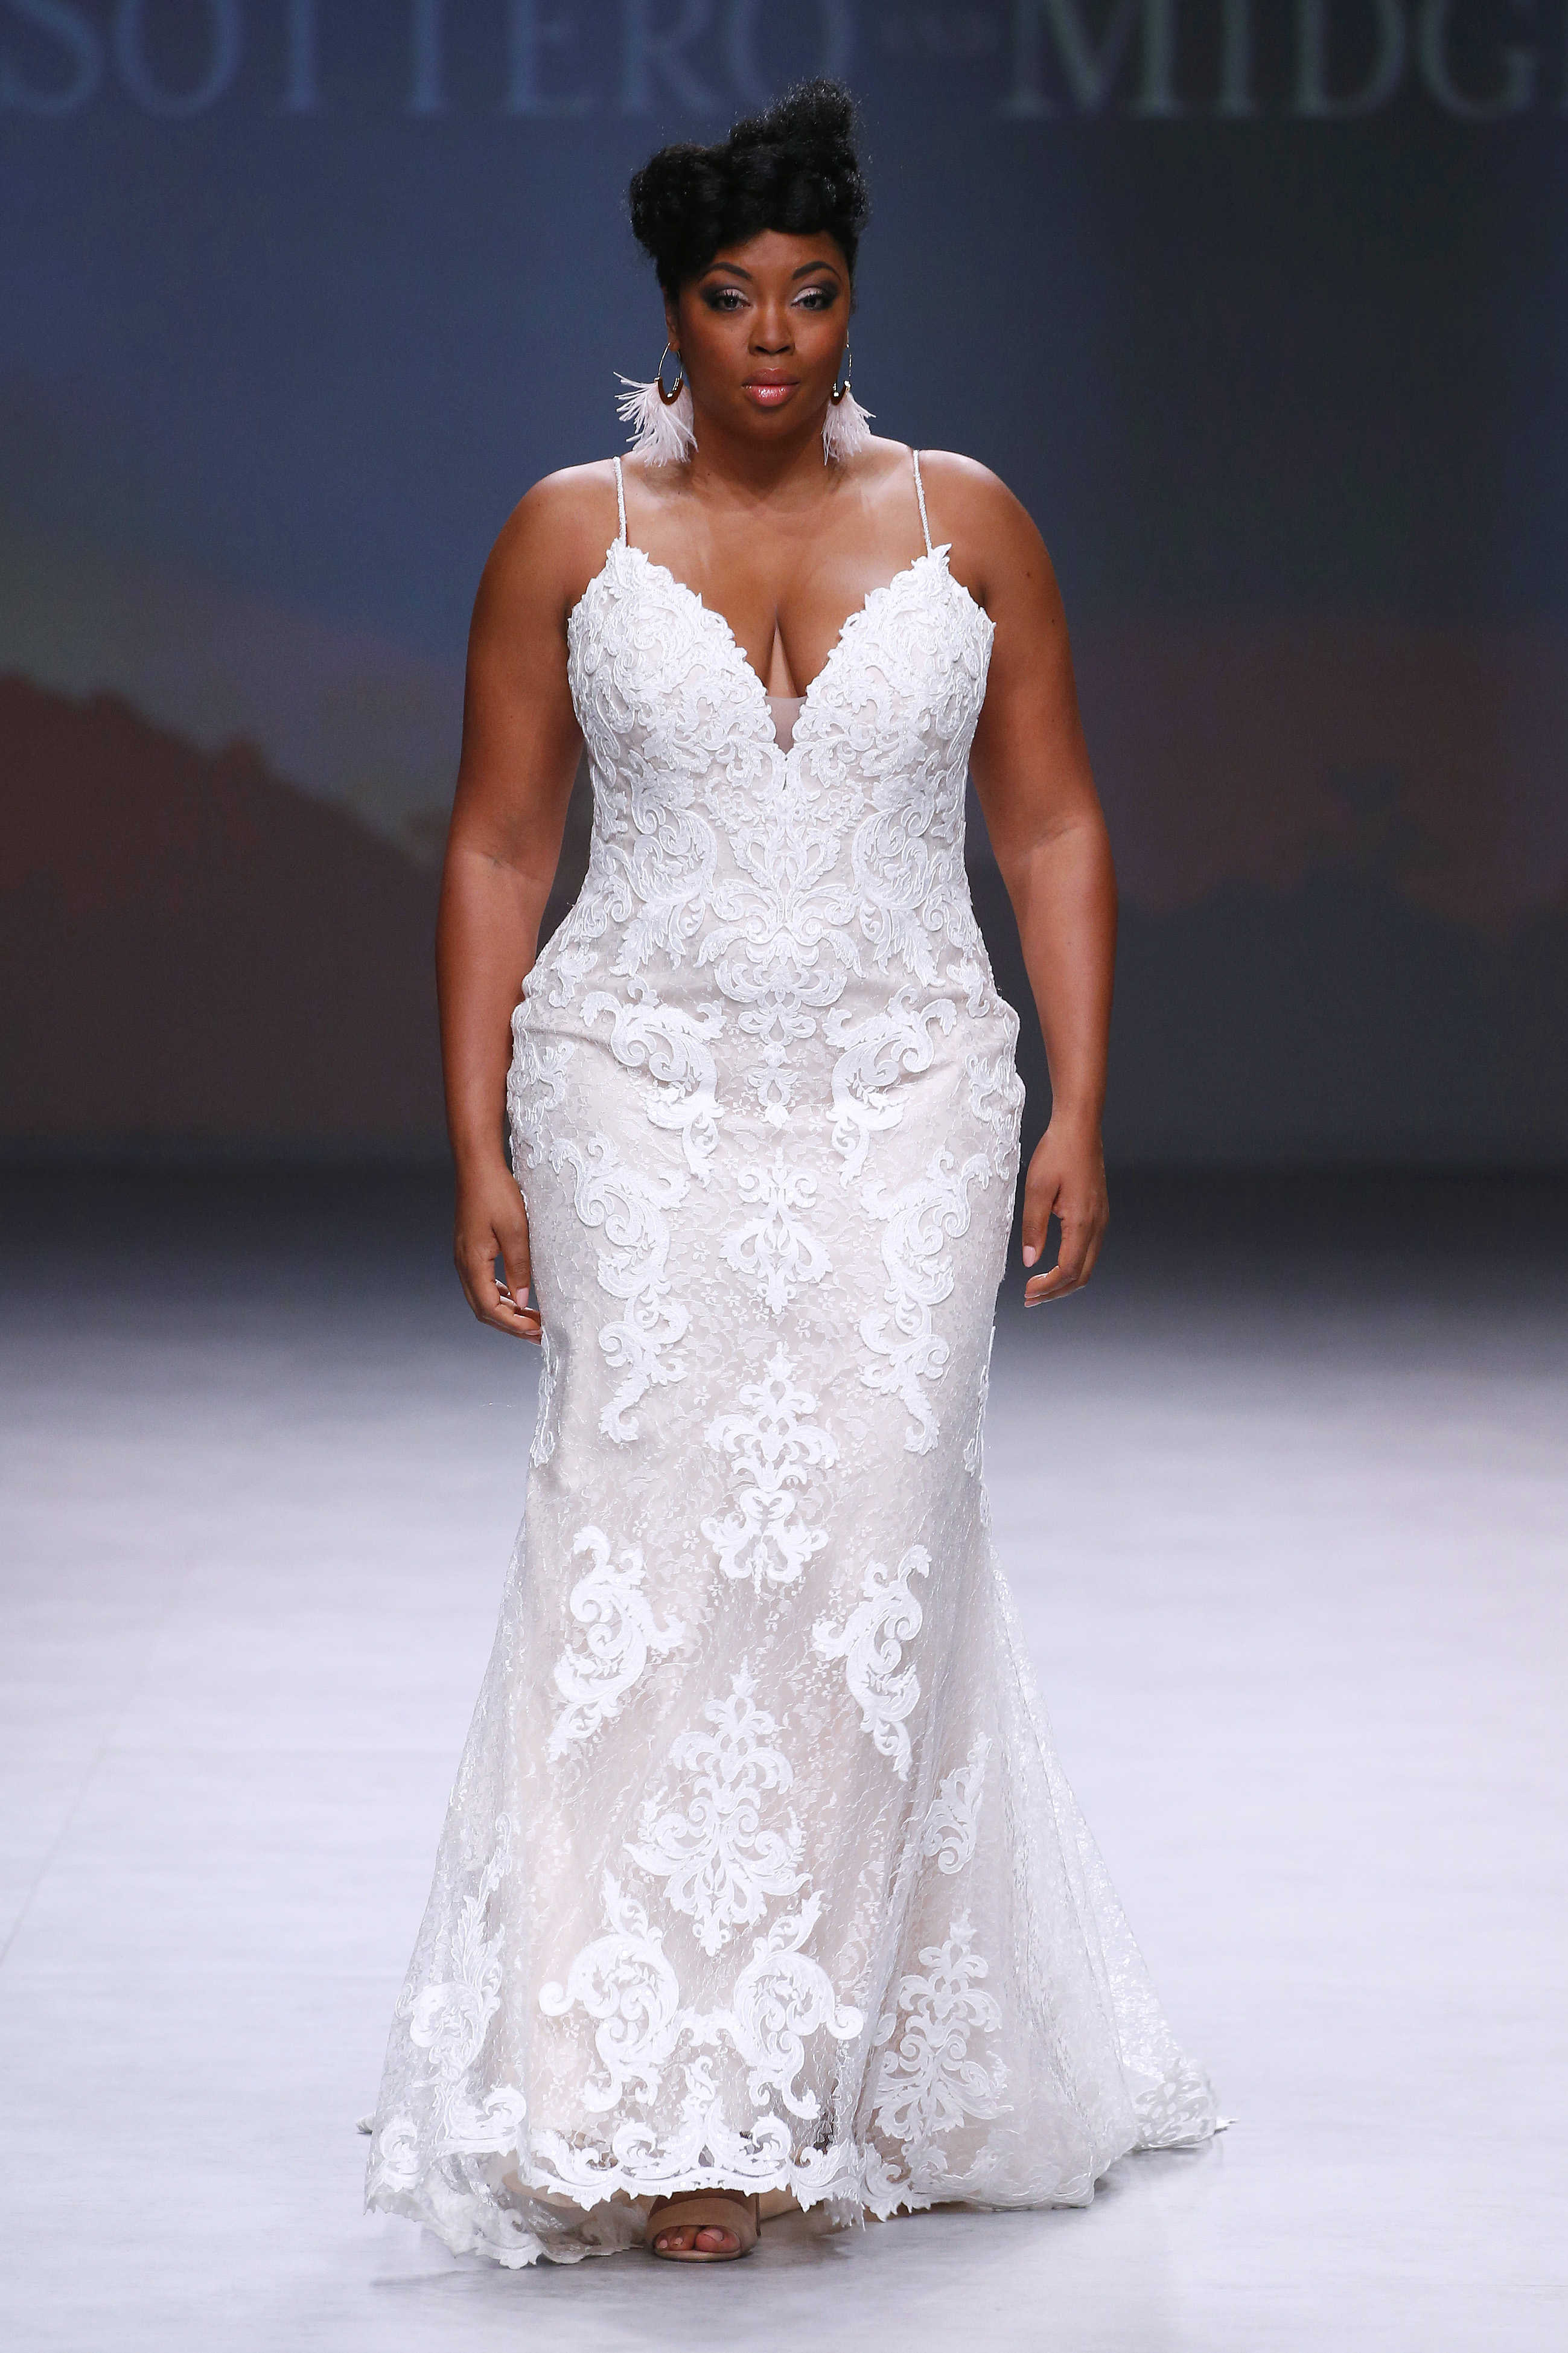 Day 4 - Valmont Barcelona Bridal Fashion Week 2019